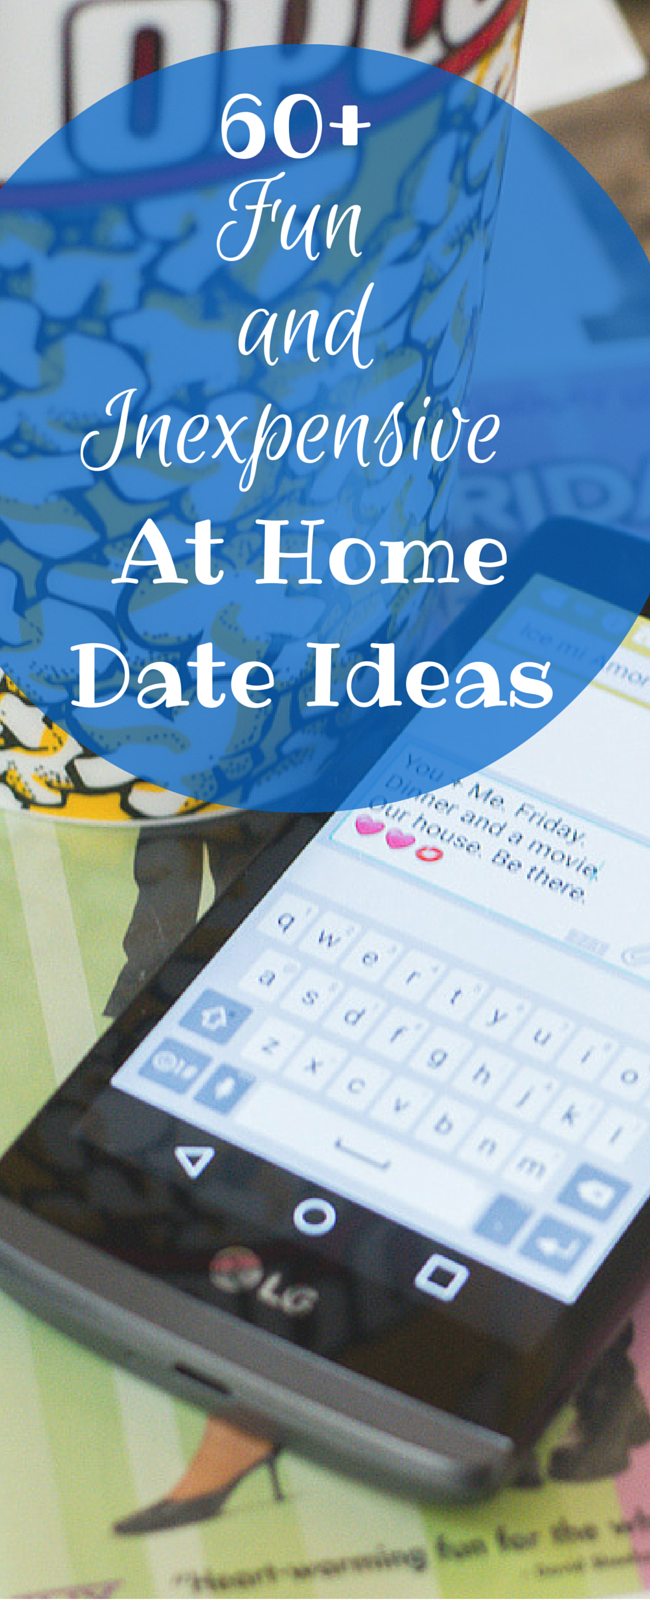 60 fun and inexpensive at home date ideas life hacks fun diy and